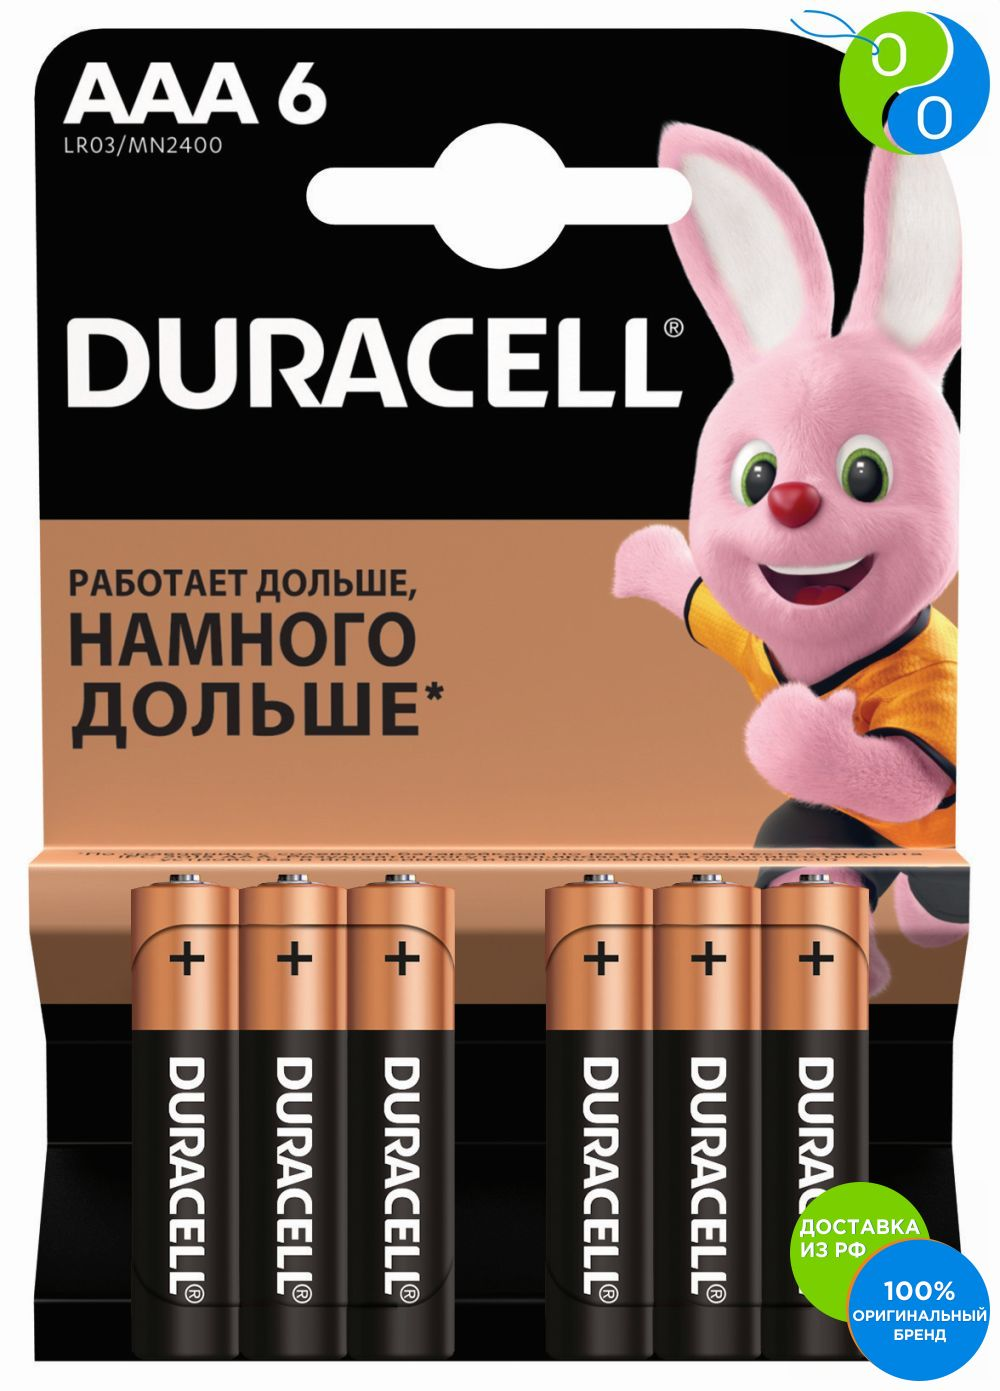 DURACELL Basic AAA alkaline batteries 1.5V LR03 6pc,Duracel, Durasell, Durasel, Dyracell, Dyracel, Dyrasell, Durasel, Duracell Alkaline battery AAA size, 6 pcs. in the package description Duracell offers a wide range o стоимость